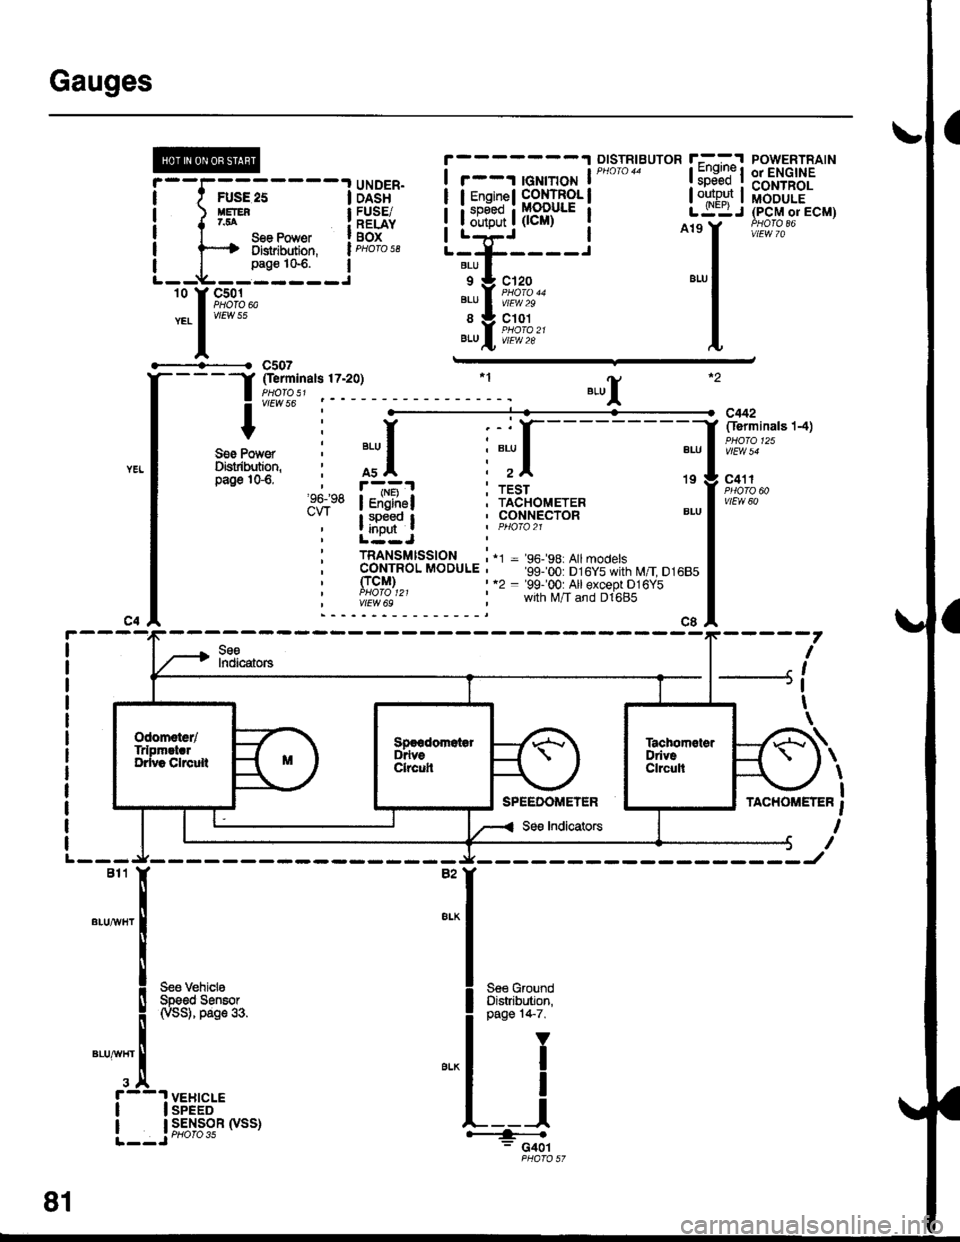 hight resolution of 4aslk mercedes benz ml320 install serpentine belt also 2006 mercedes ml350 fuse box mercedes benz ml500 engine diagram wiring